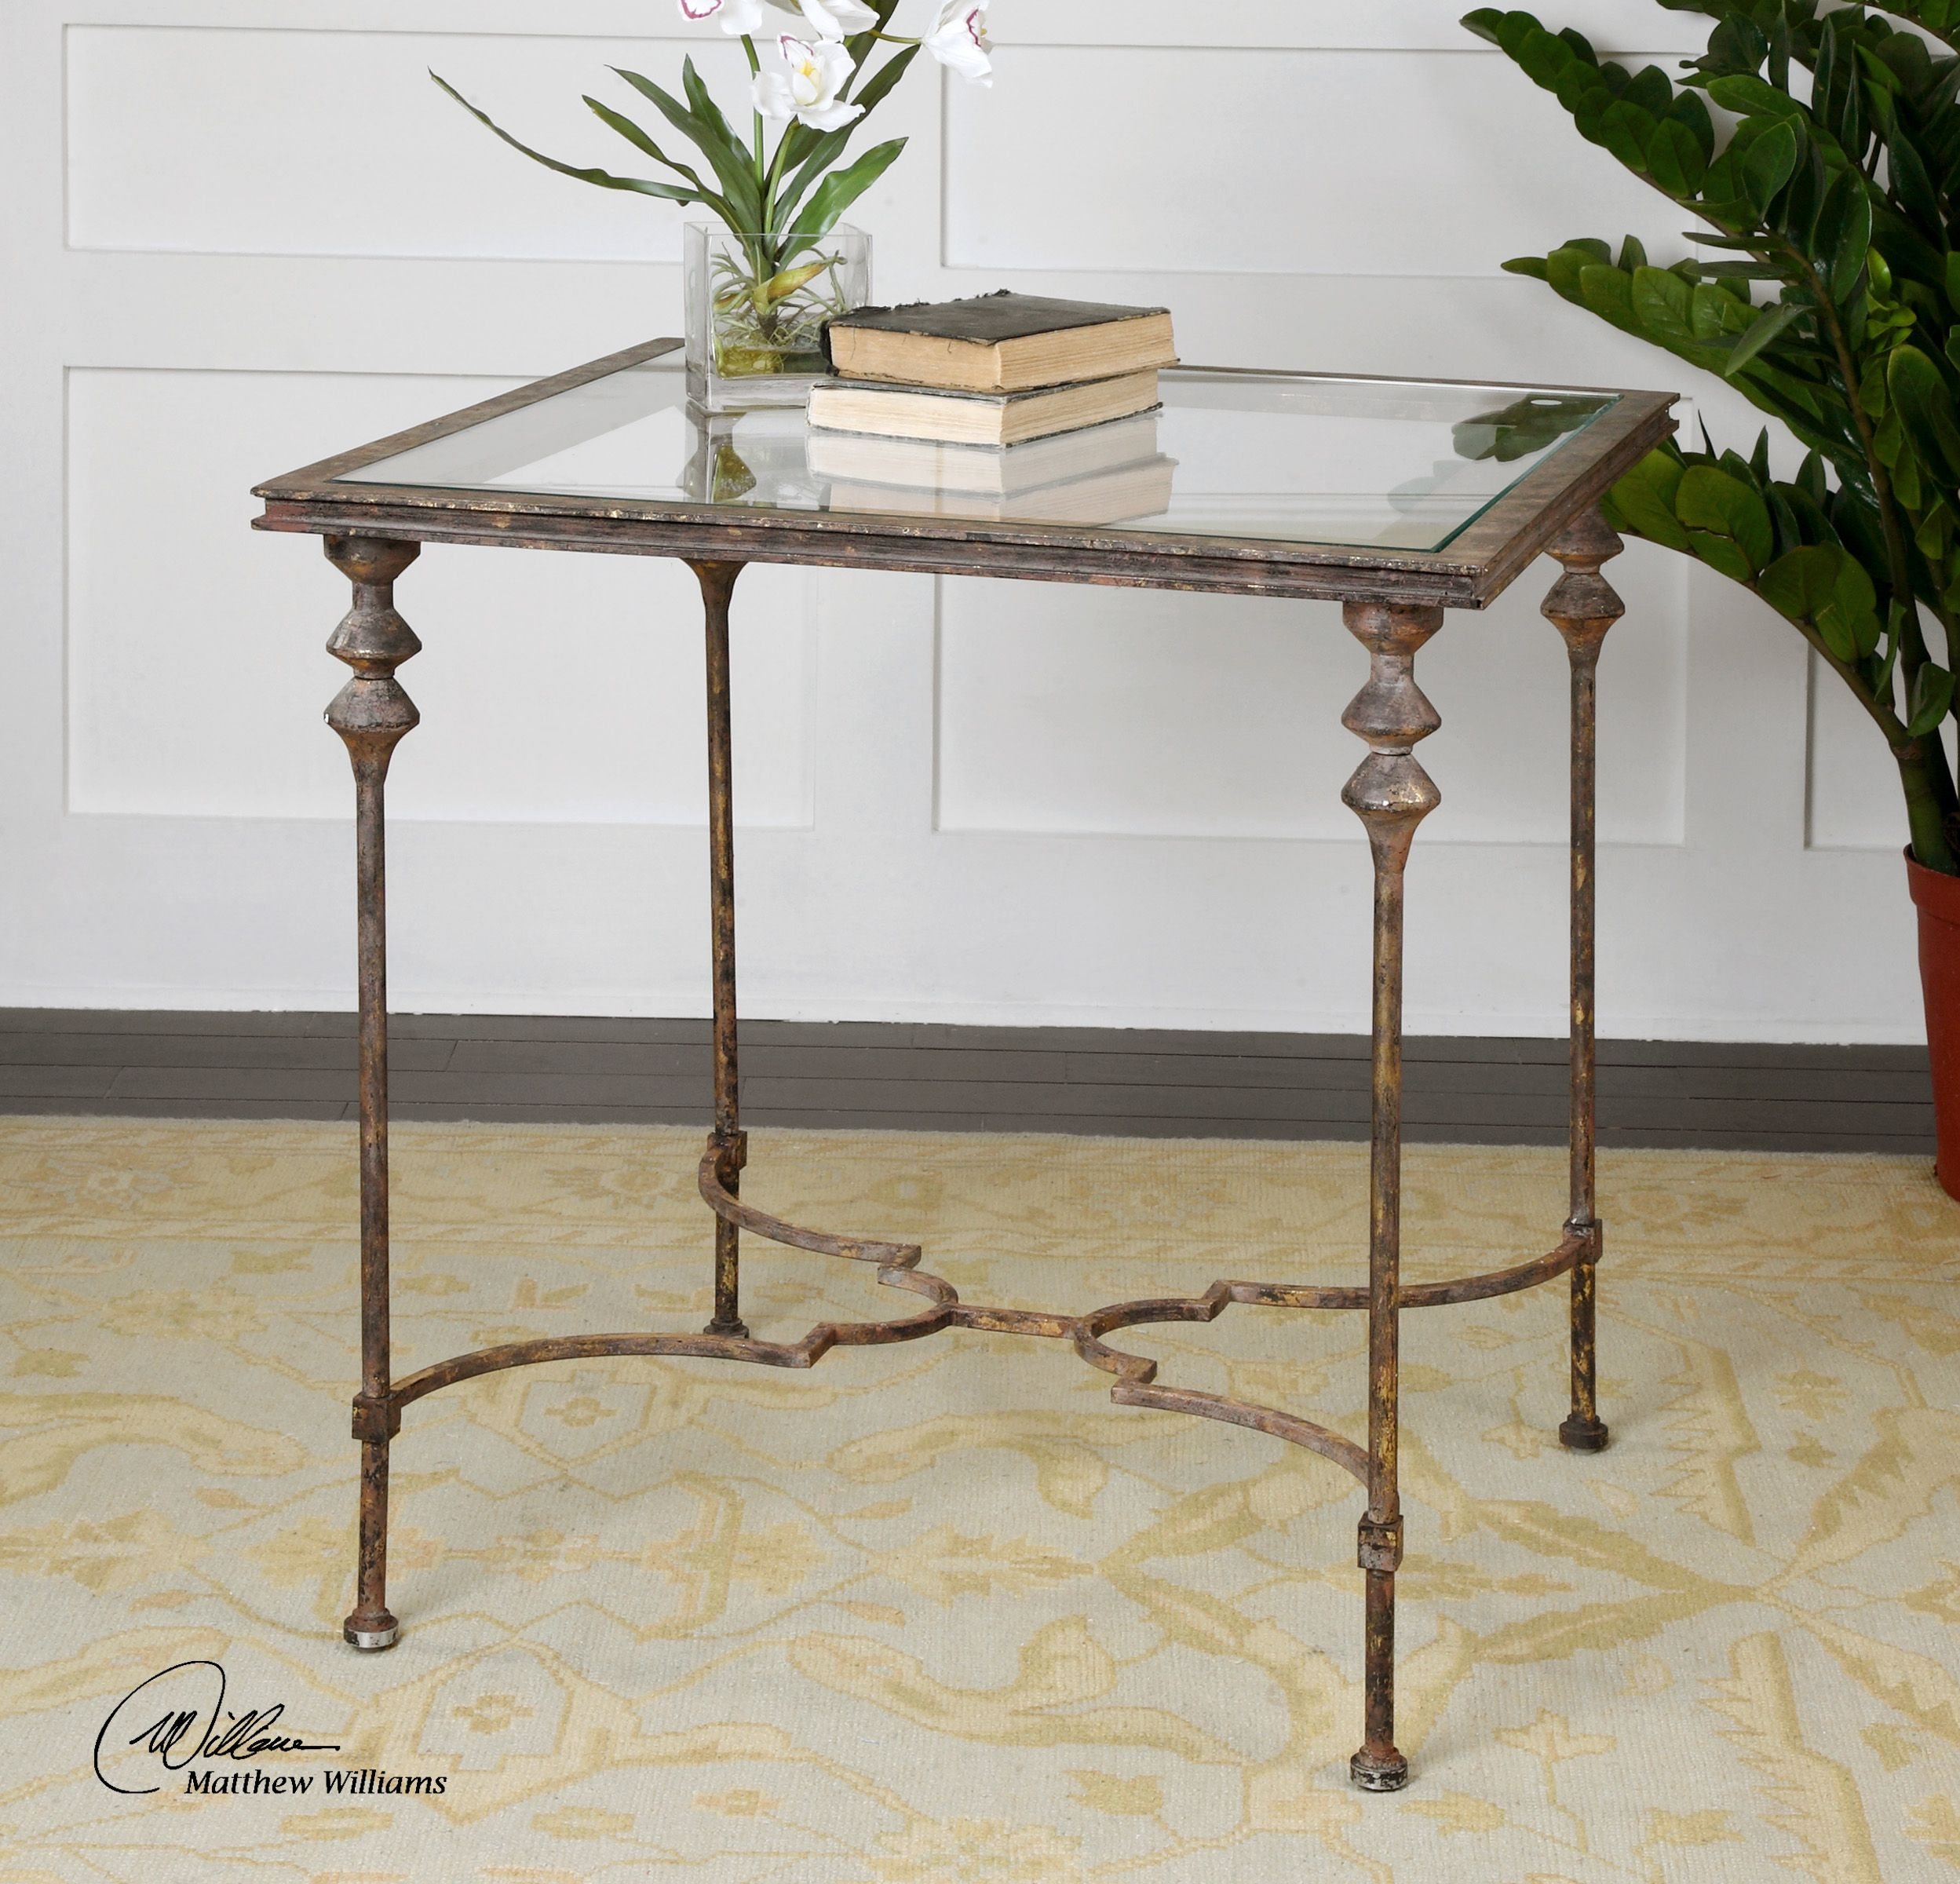 End Table 24365 28 X 28 X 28 H Glass End Tables End Tables Table [ 2400 x 2497 Pixel ]